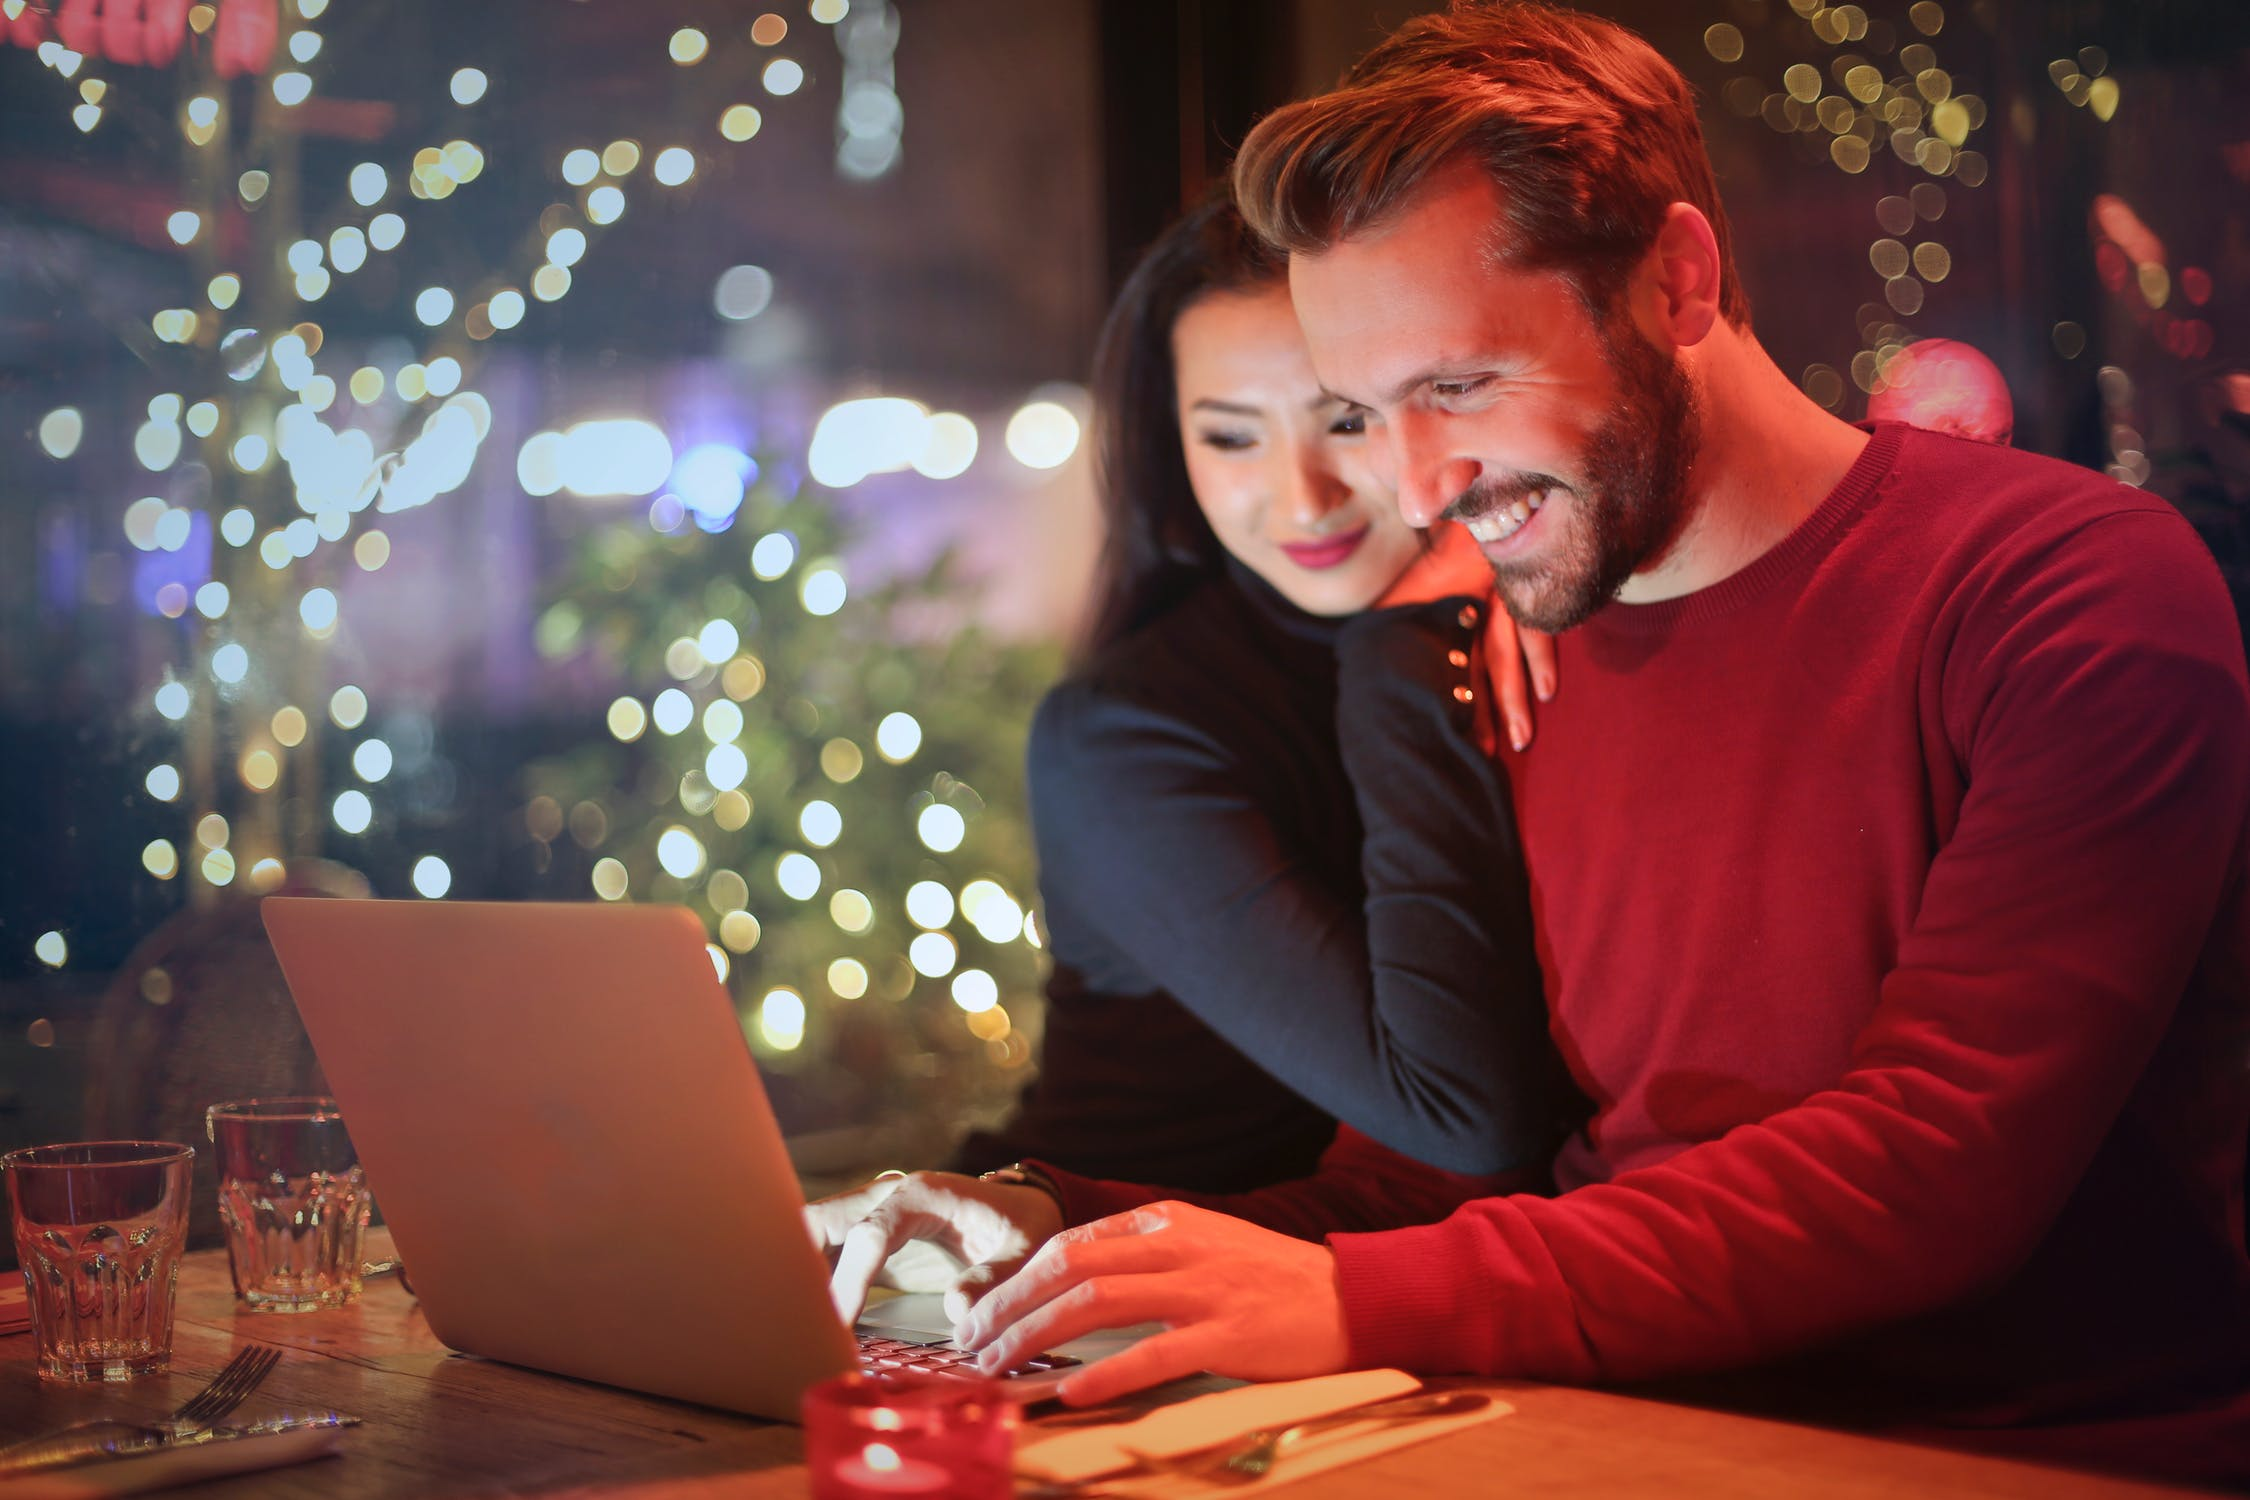 Life insurance– the perfect gift for Valentine's Day